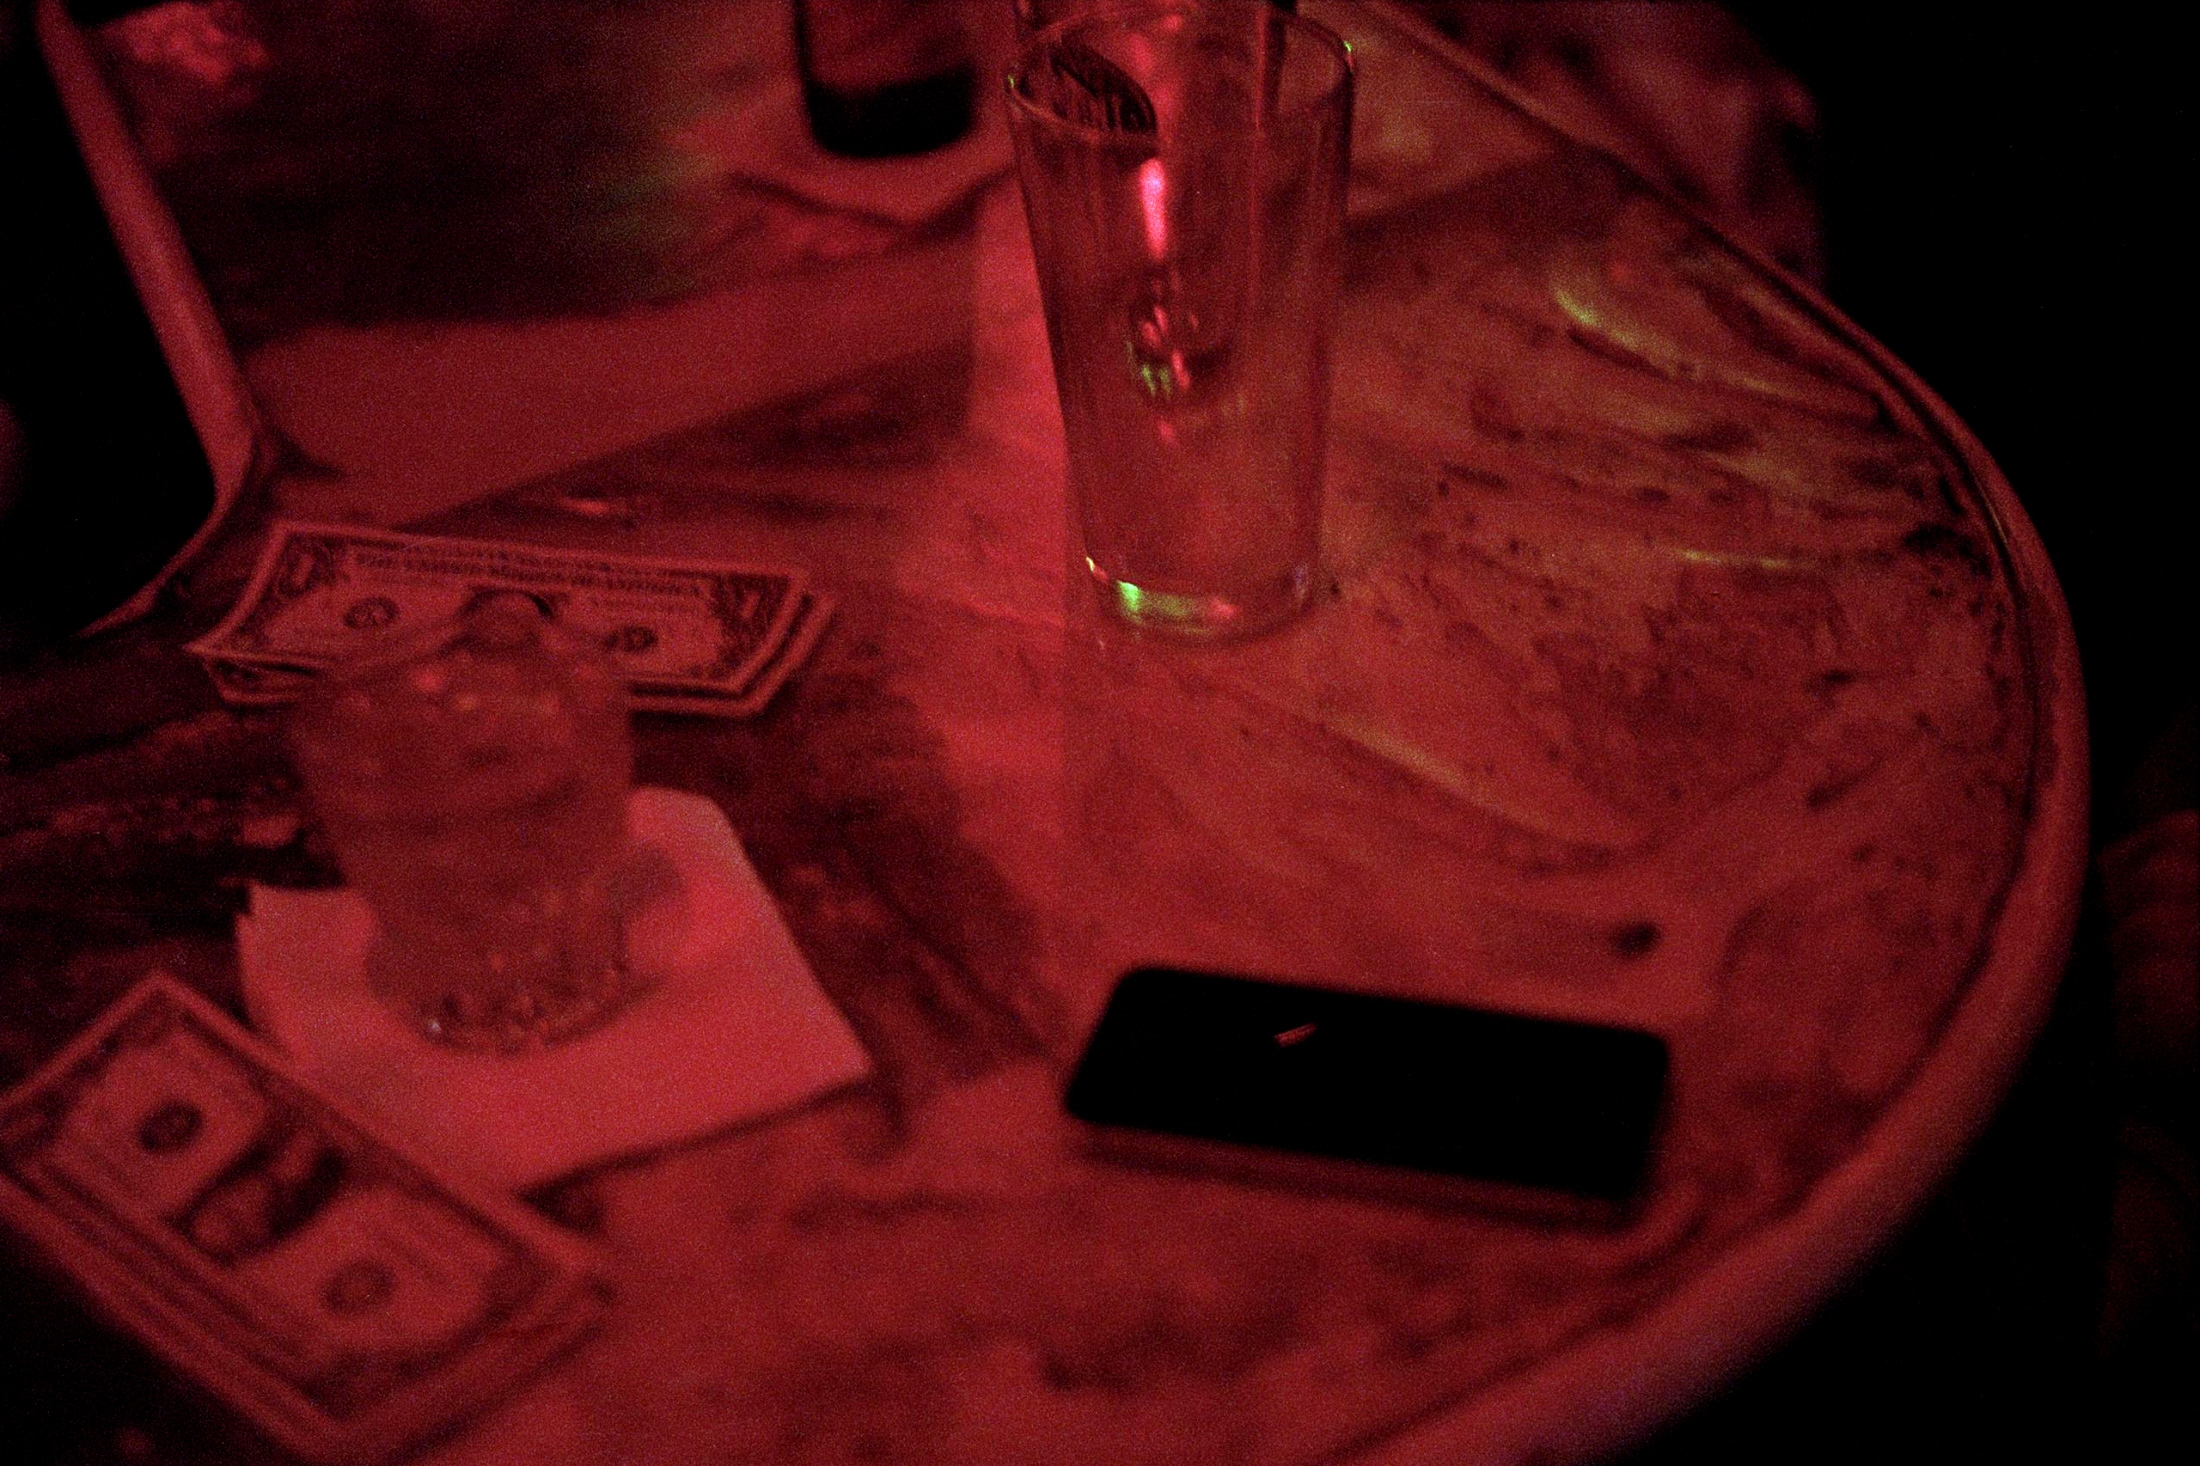 Drinks on a bar, New York, NY